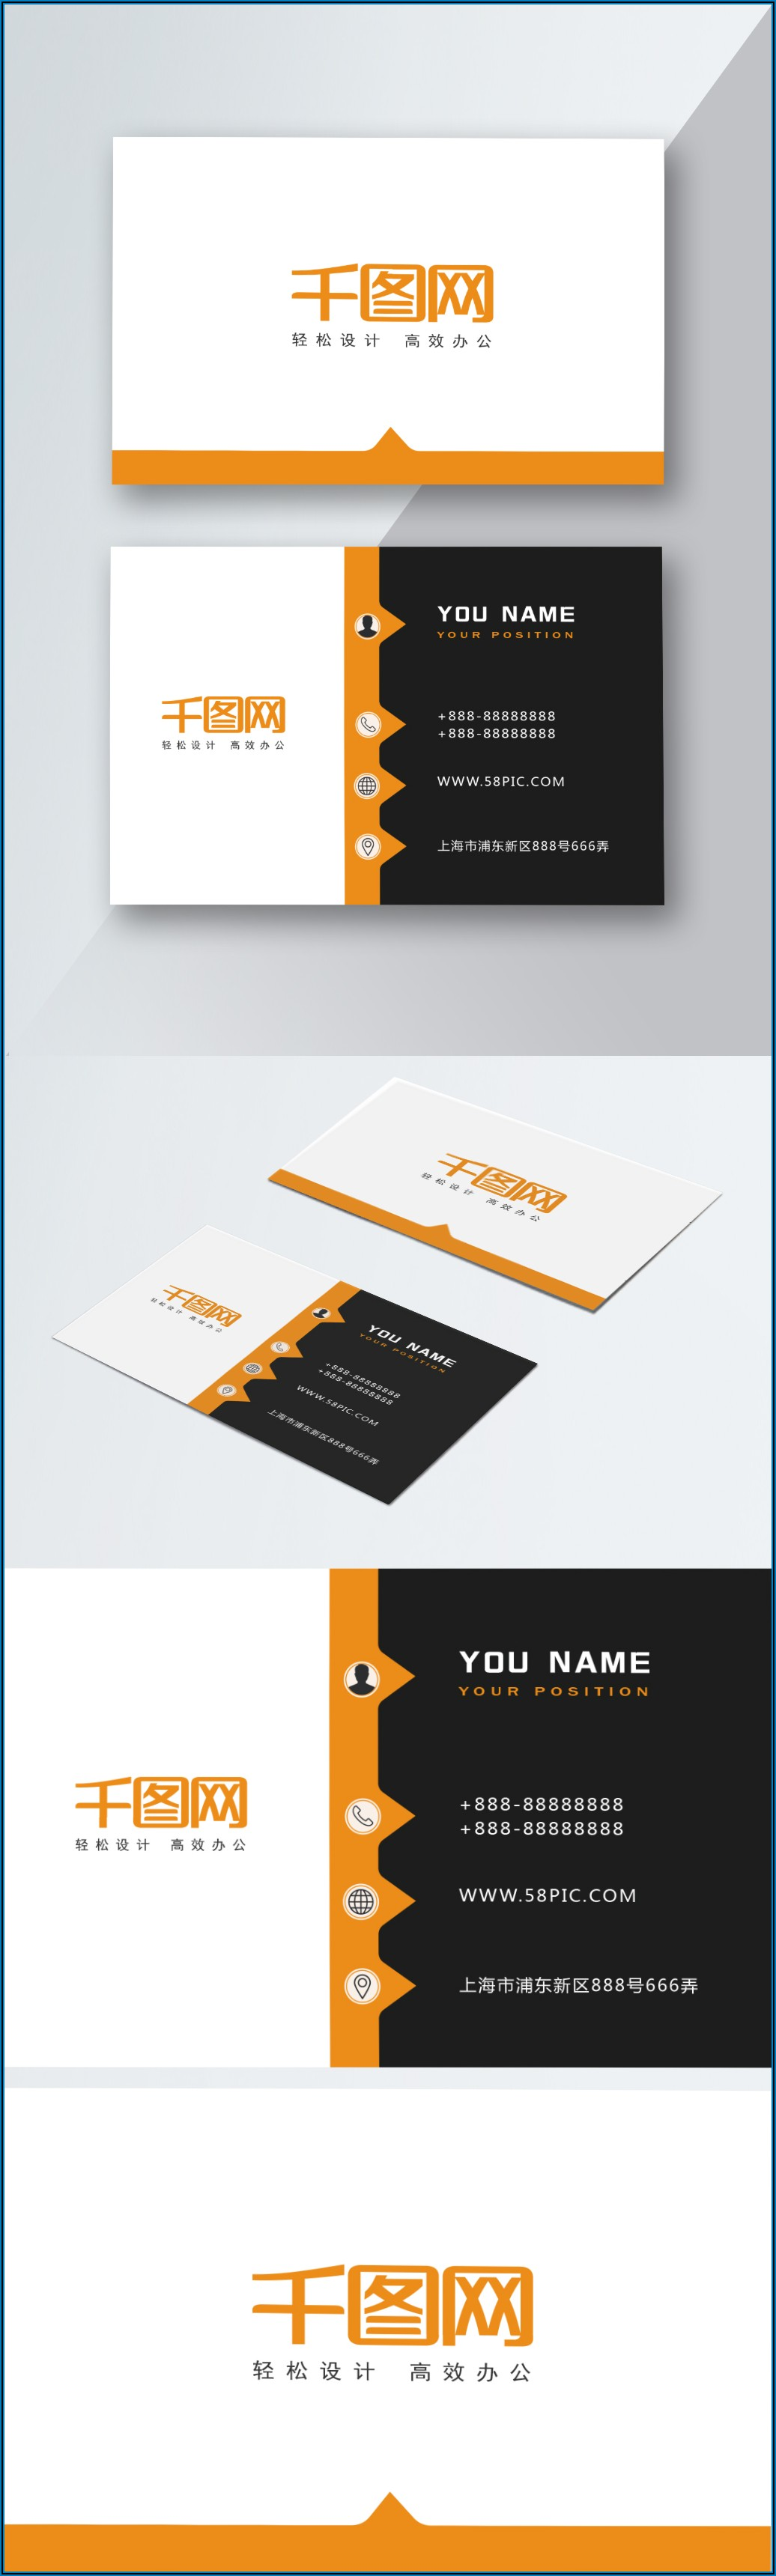 Folding Business Card Template Free Download